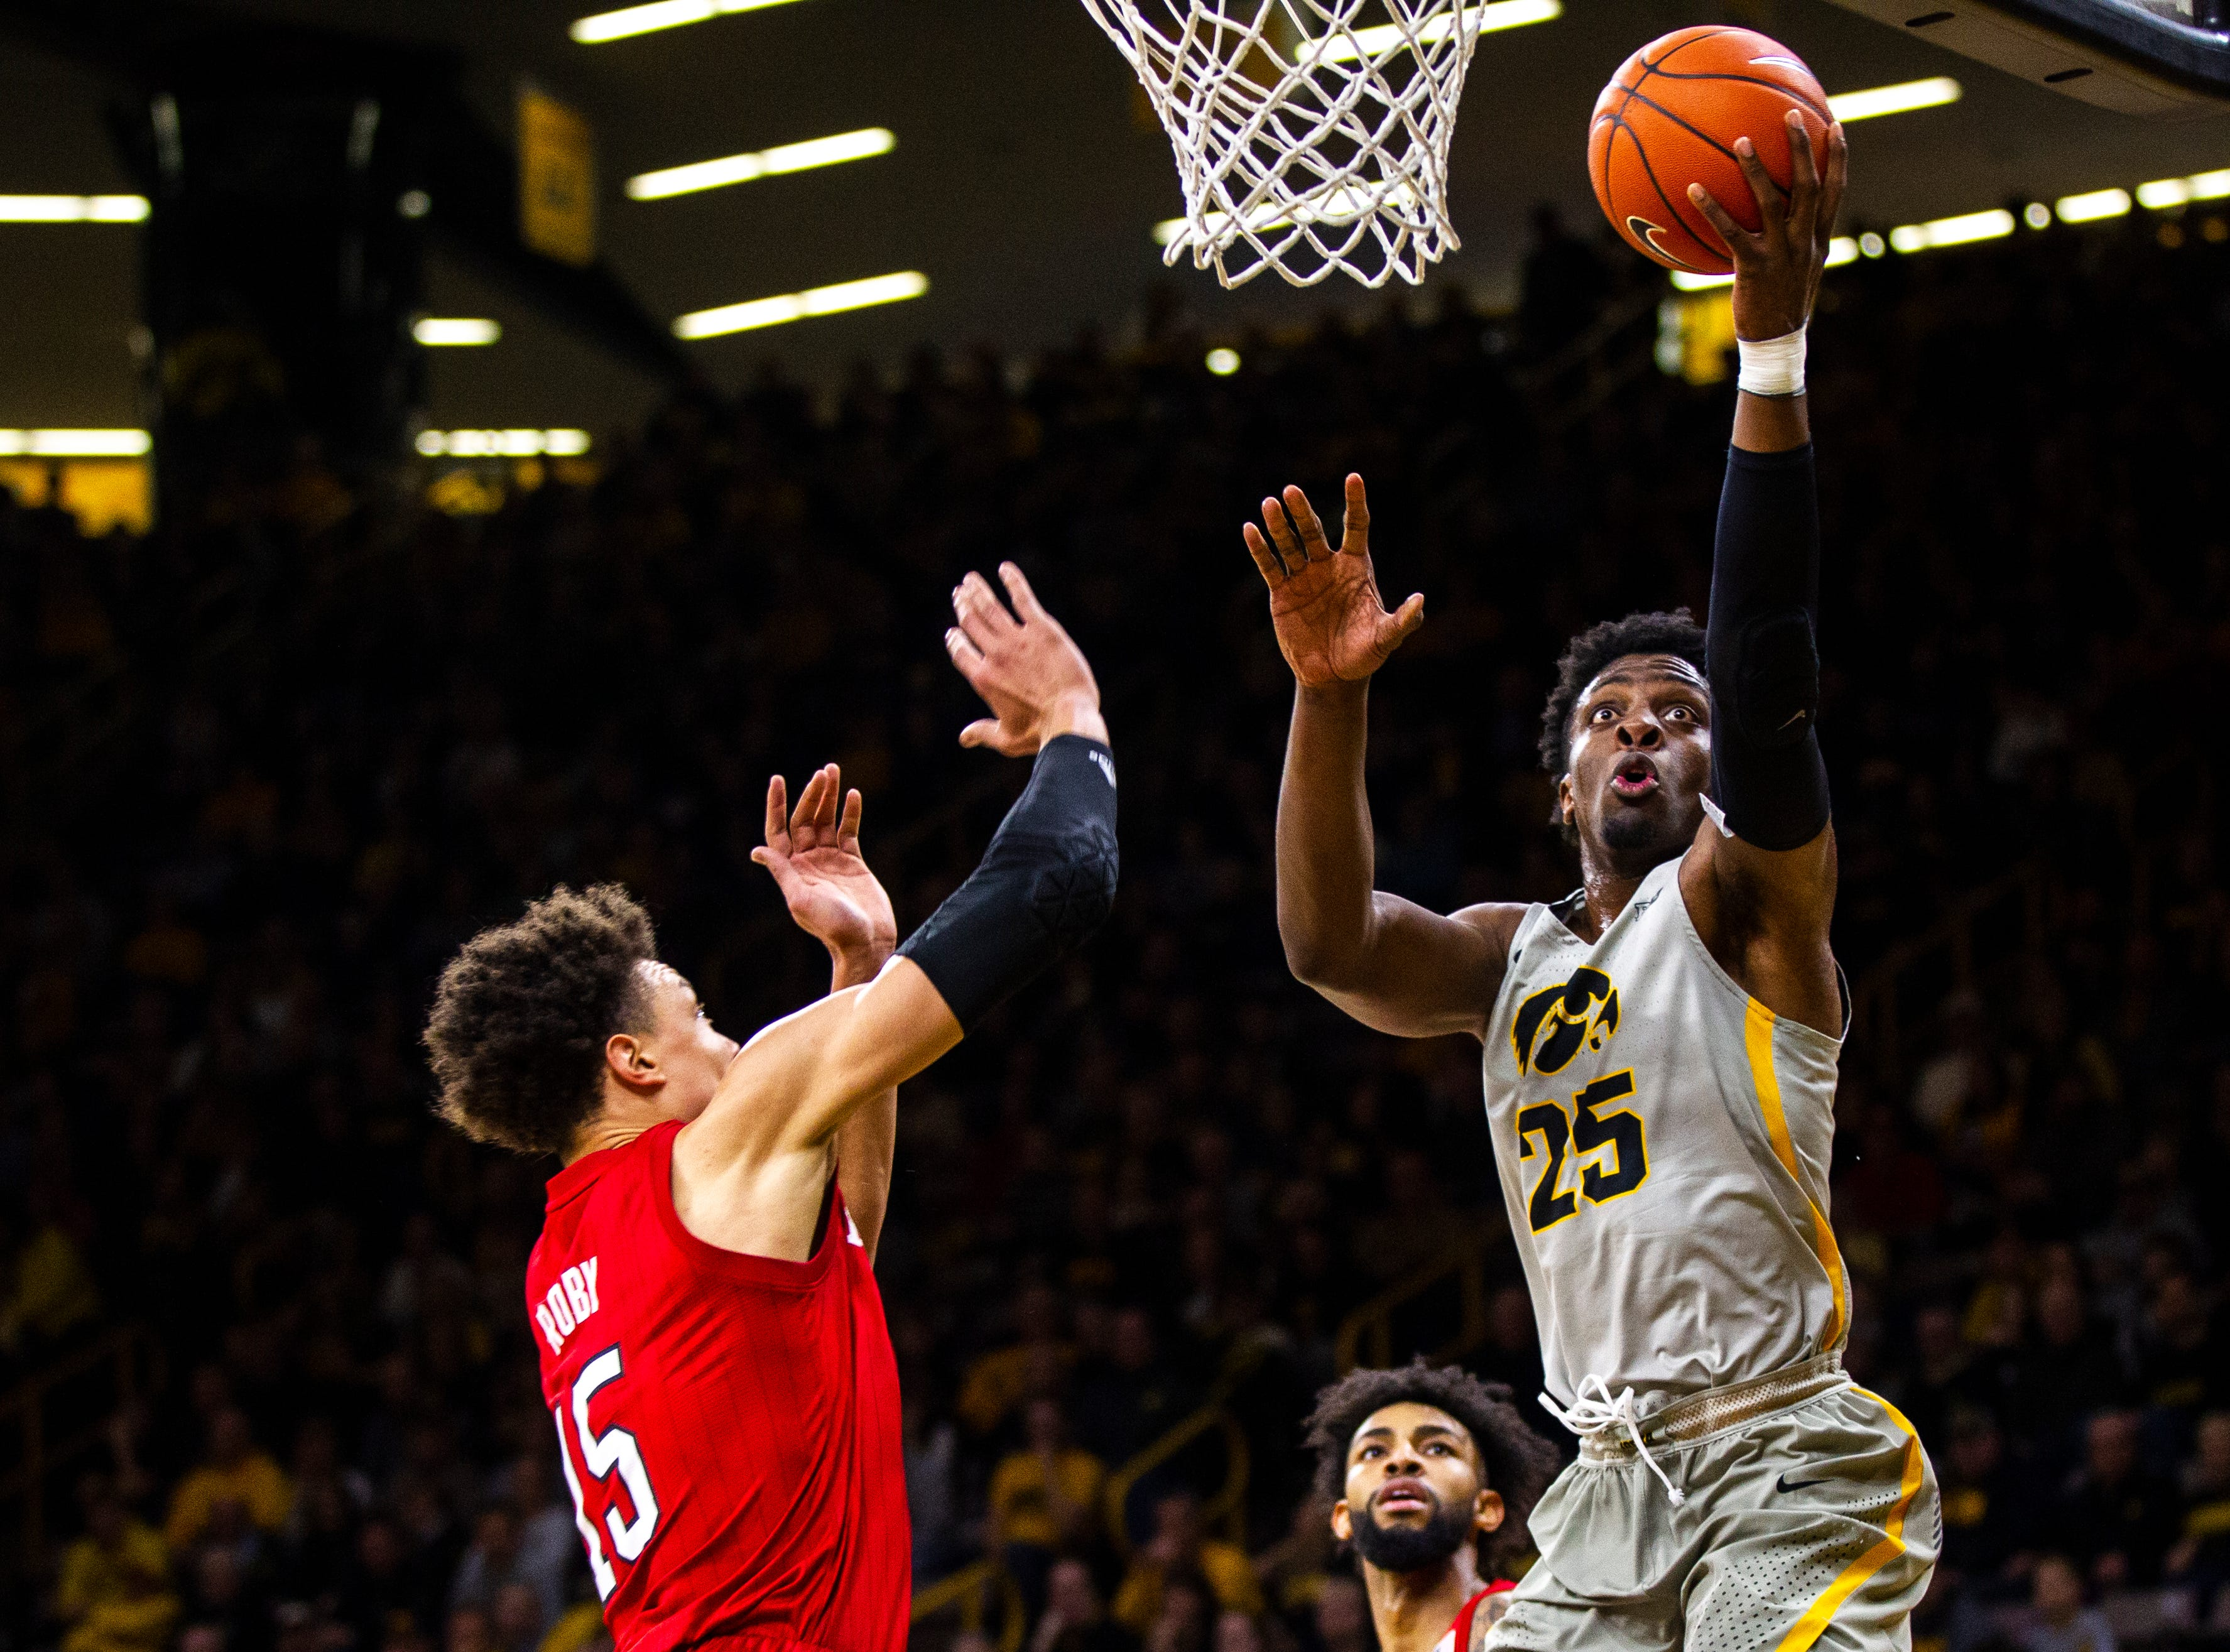 Iowa forward Tyler Cook (25) attempts a basket past Nebraska forward Isaiah Roby (15) during a NCAA Big Ten Conference men's basketball game on Sunday, Jan. 6, 2019, at the Carver-Hawkeye Arena in Iowa City, Iowa.